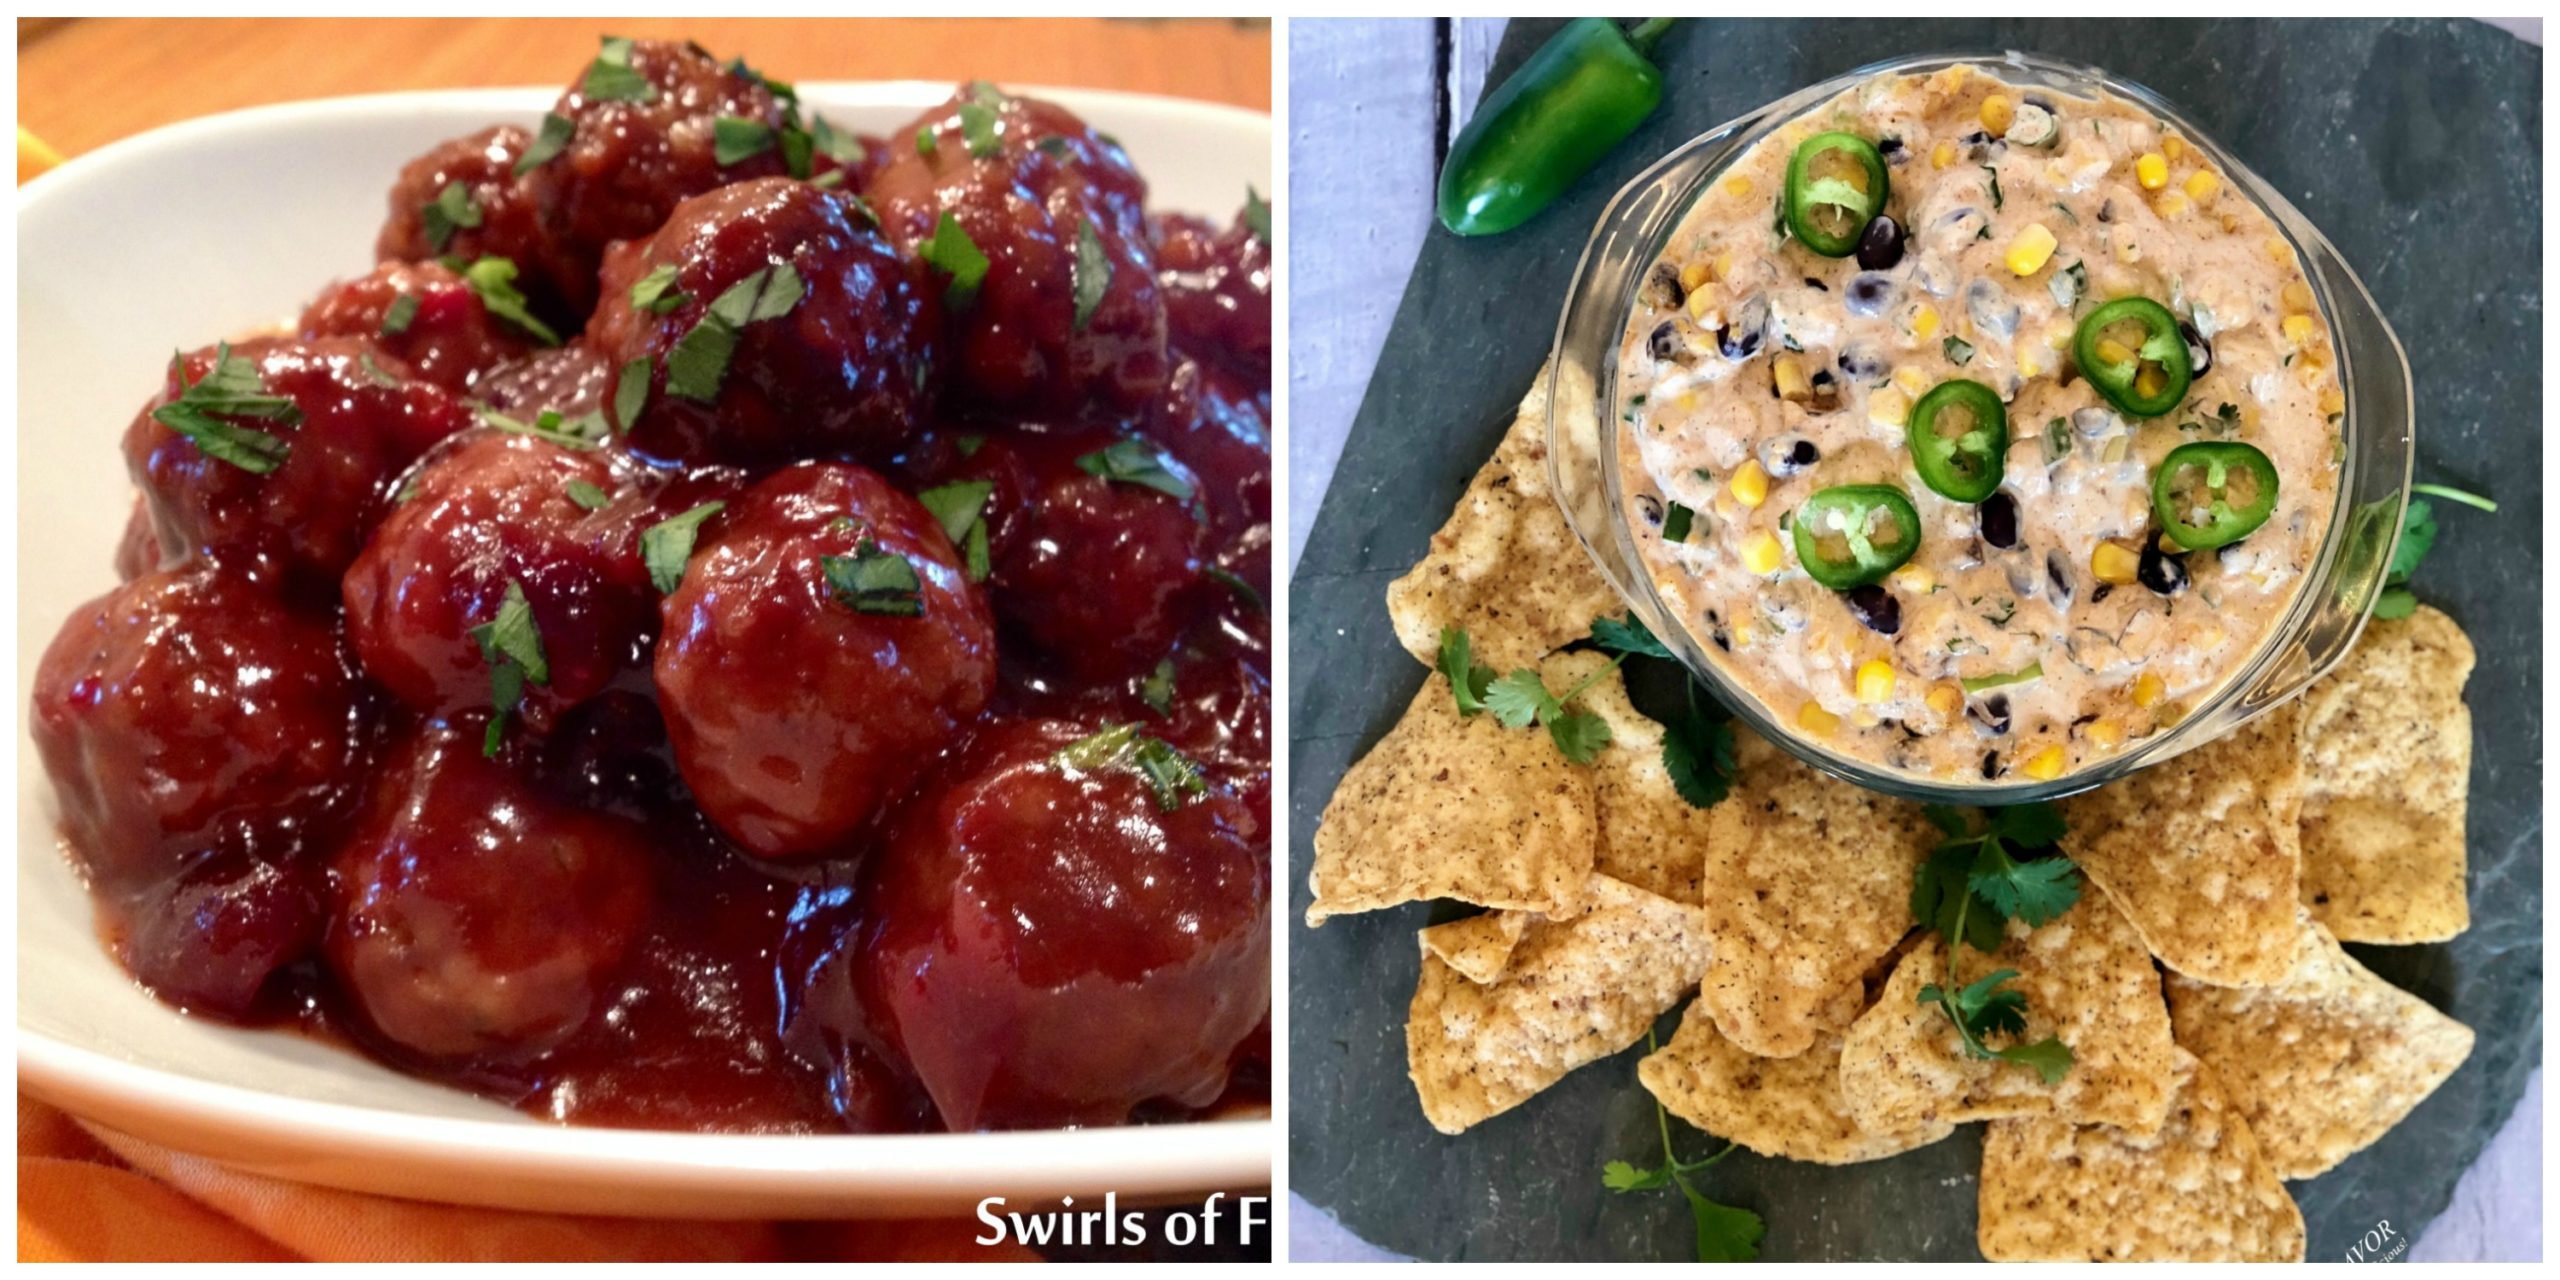 Cranberry meatballs and Black Bean Corn Dip